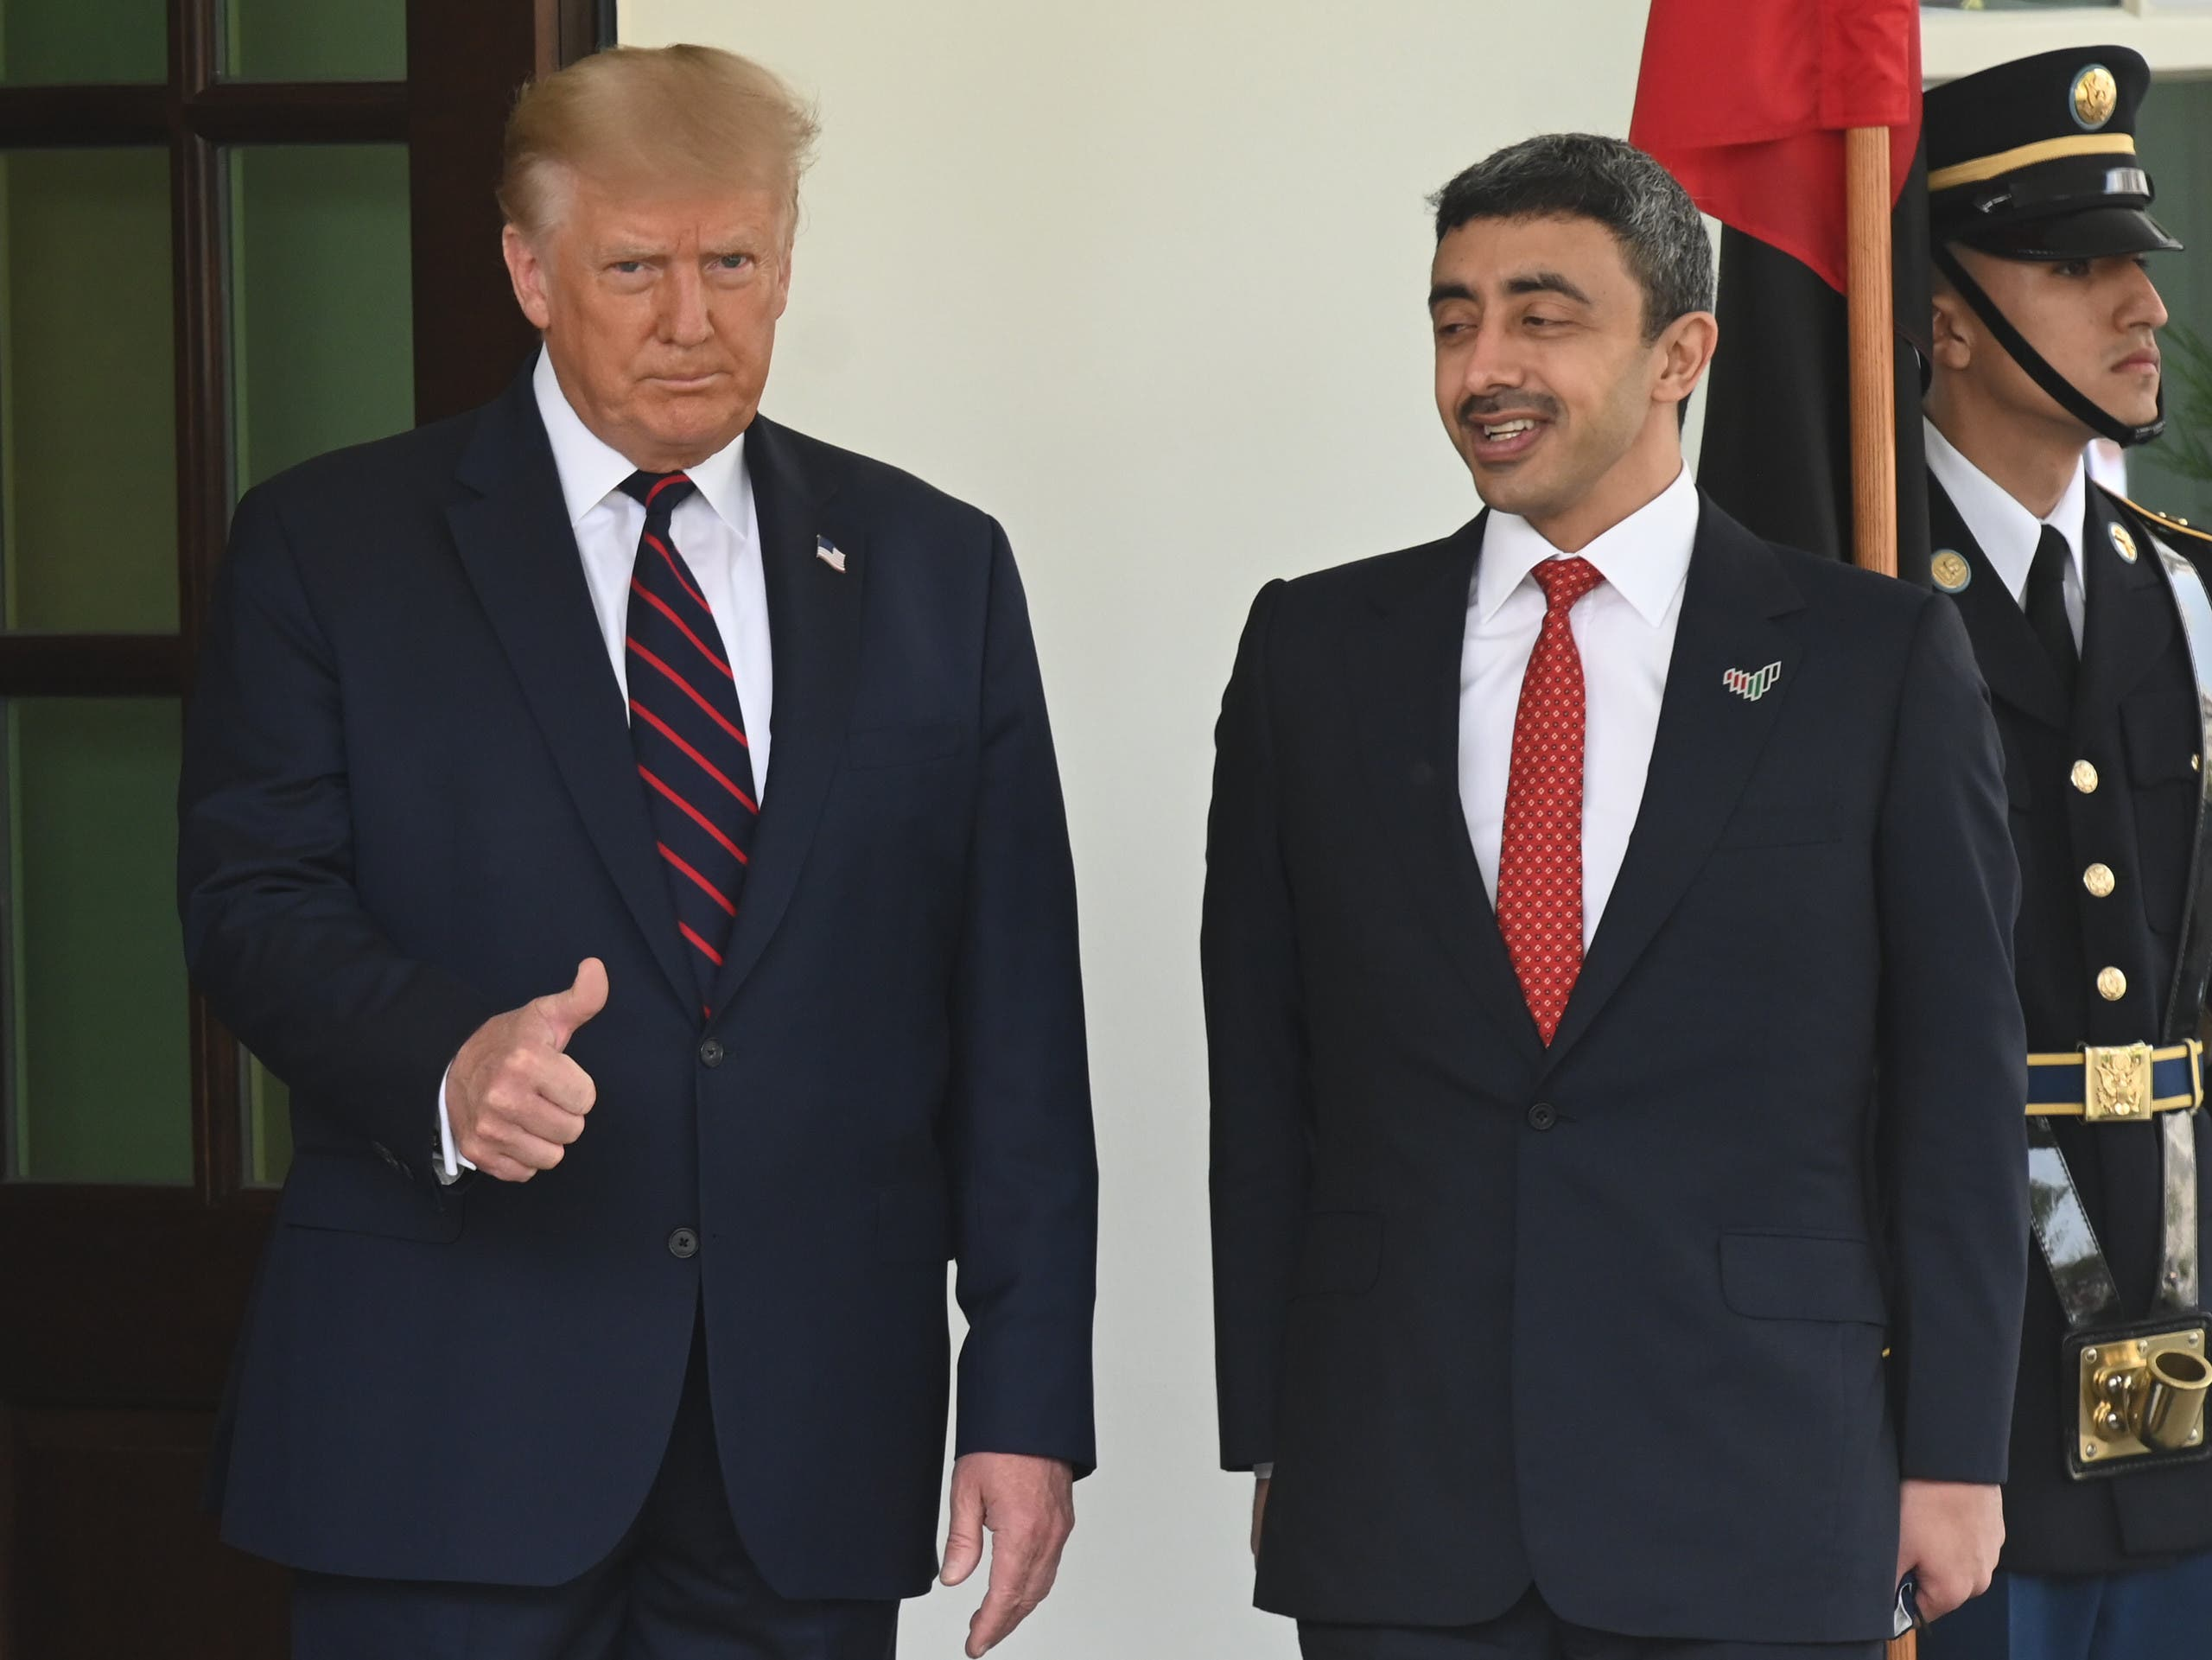 US President Donald Trump and UAE Foreign Minister Sheikh Abdullah bin Zayed Al Nahyan at the White House ahead of the signing.